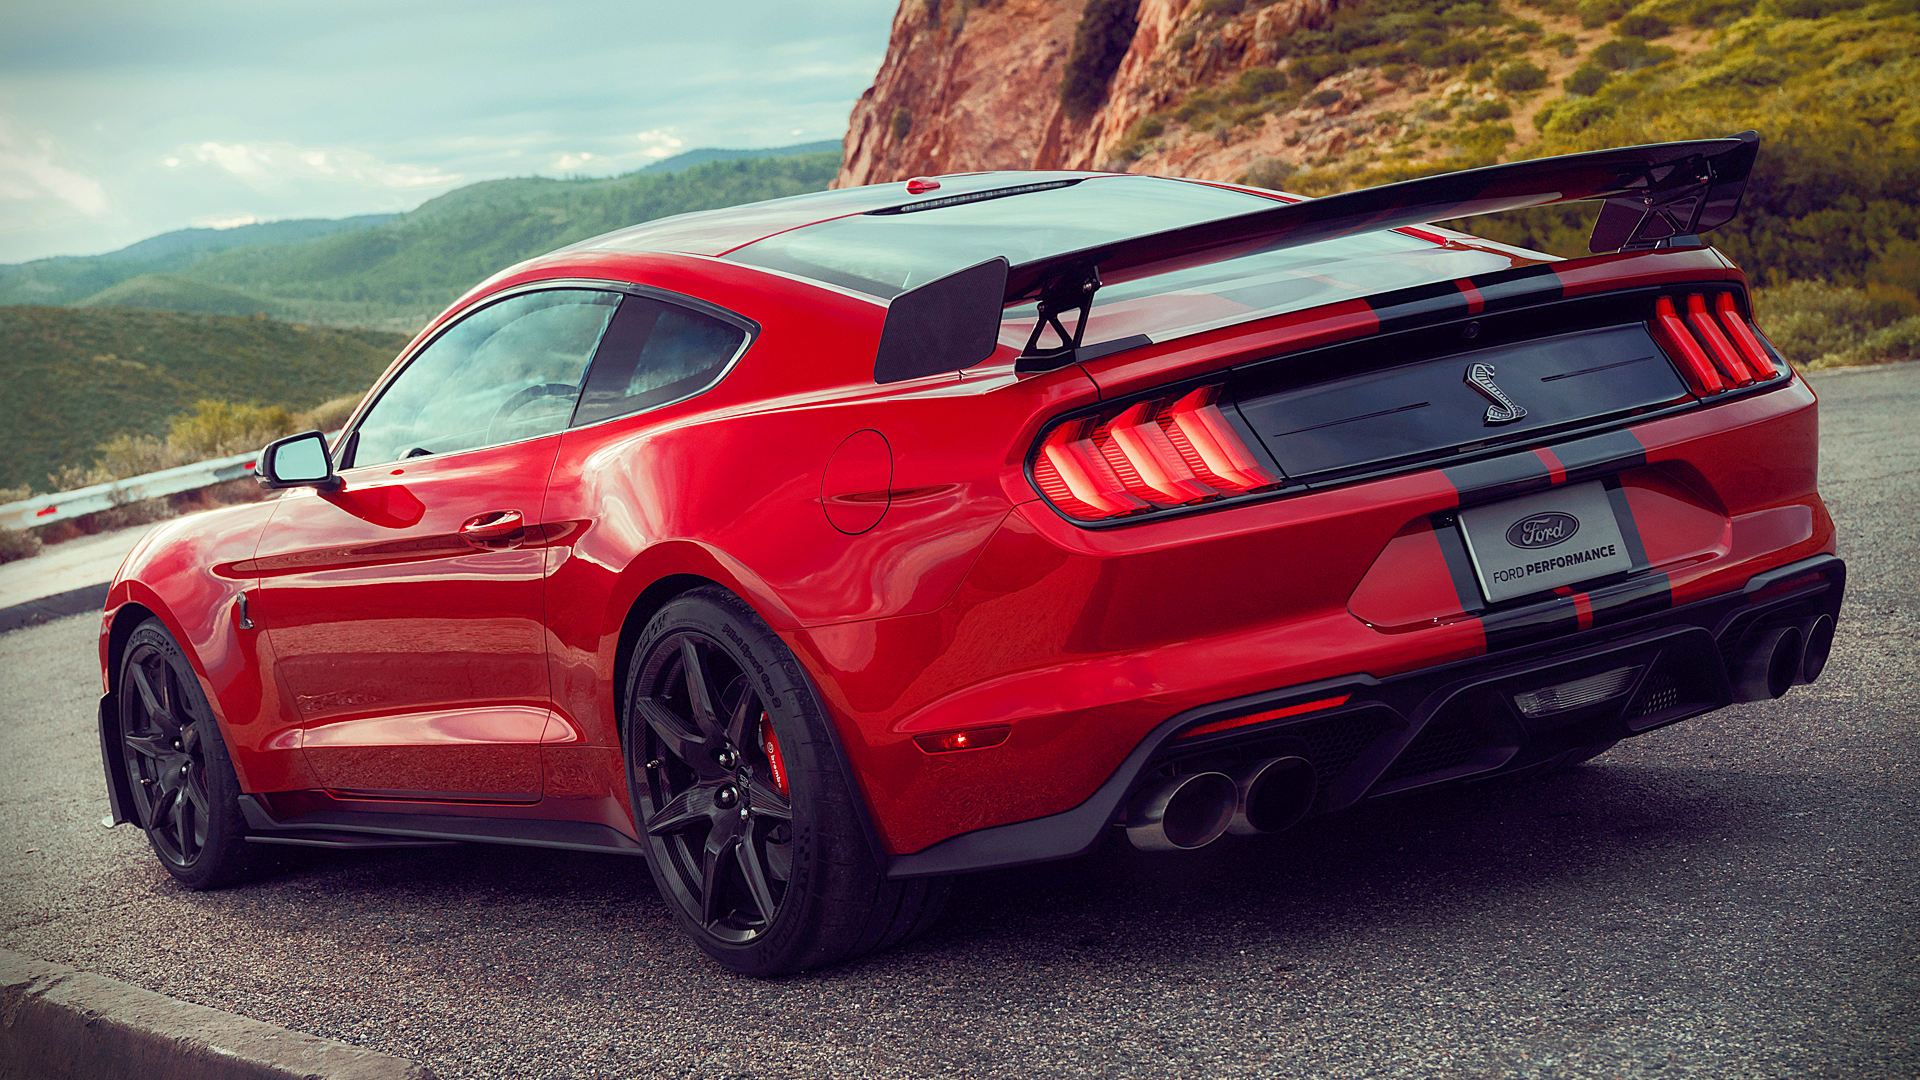 2020 ford mustang shelby gt500 red wallpaper